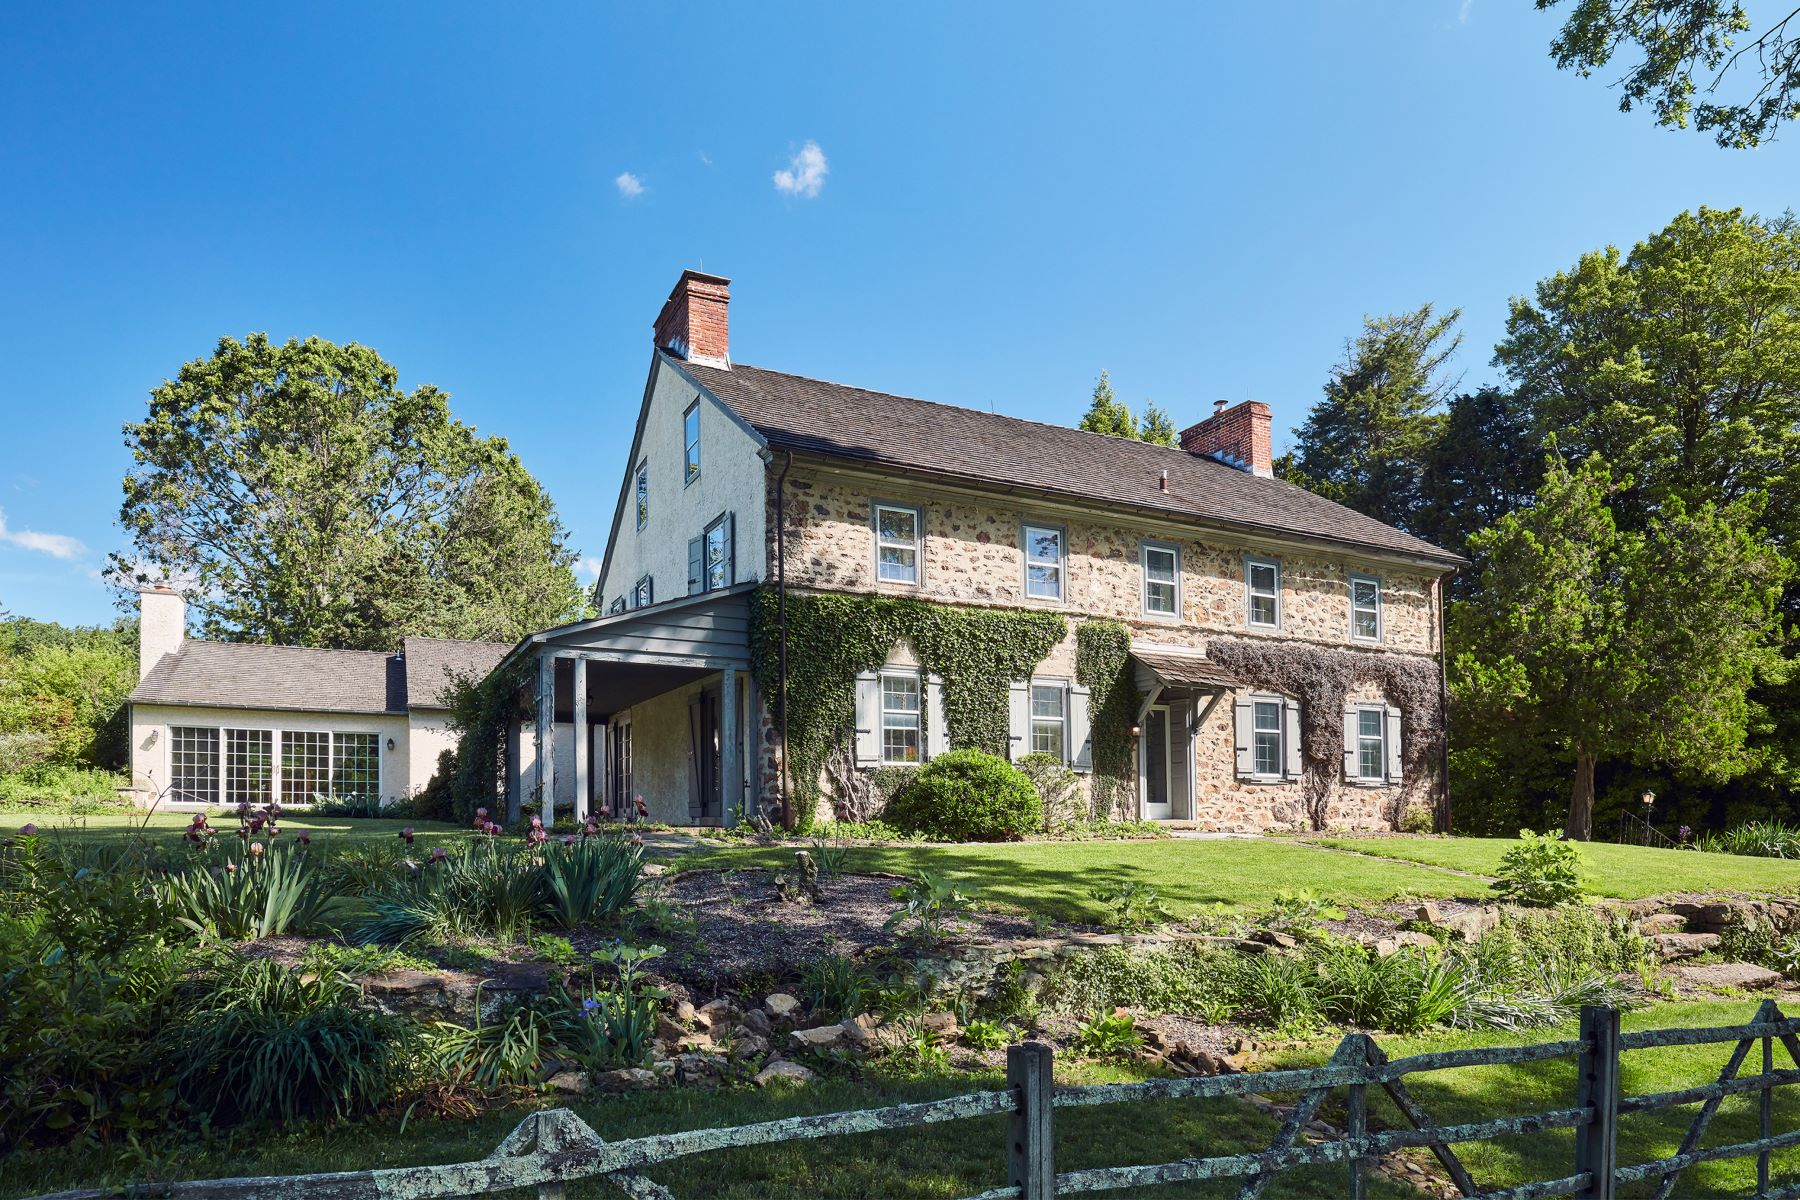 Single Family Homes for Sale at Little Brook Farm 2221 WHITE HORSE RD Berwyn, Pennsylvania 19312 United States